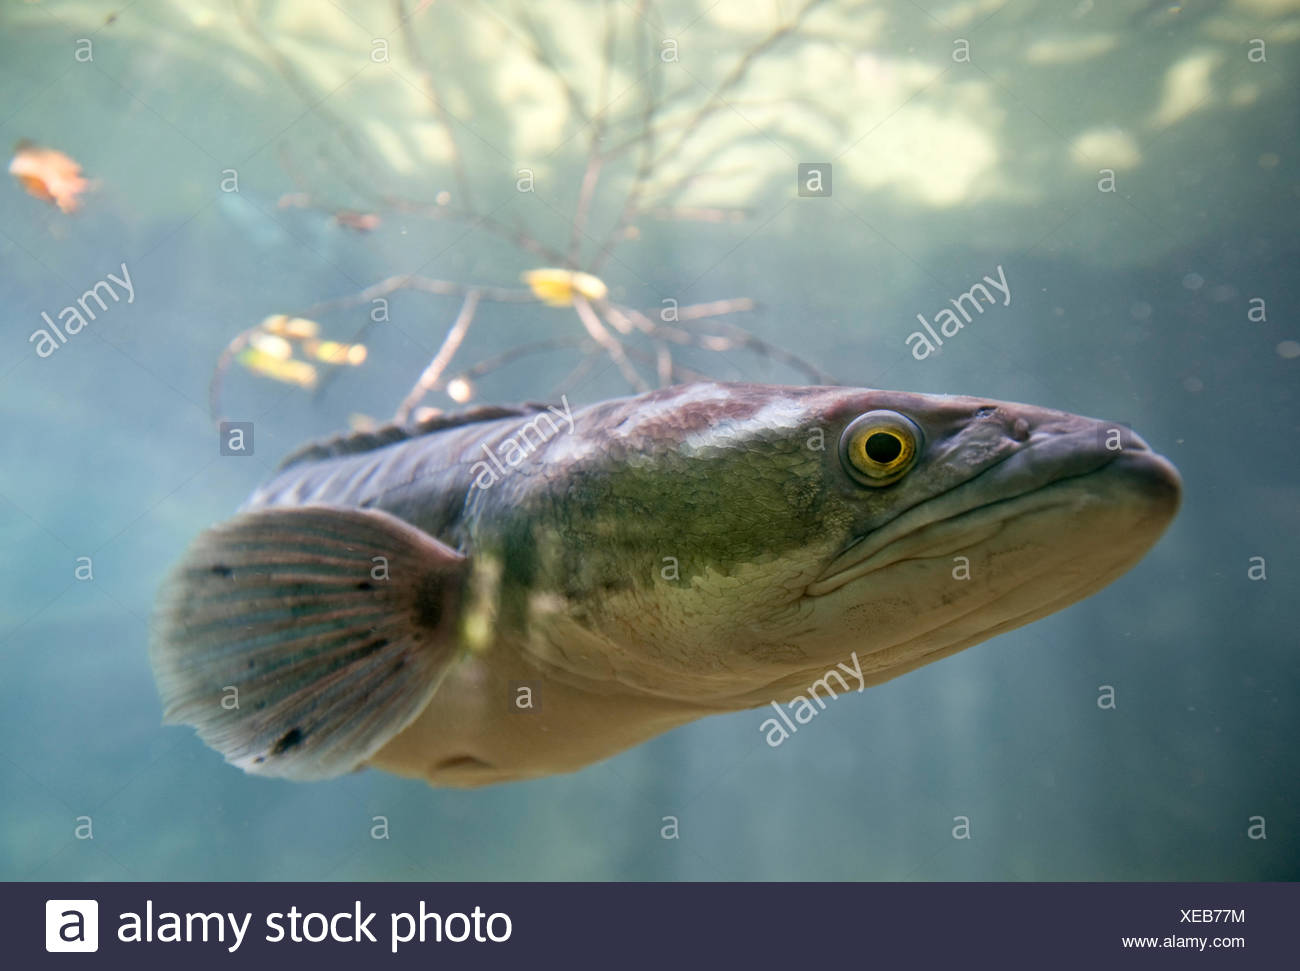 Giant snakehead / Toman (Channa micropeltes)Found in freshwater / flooded swamp areas. From SE Asia including Borneo. Captive, Singapore Zoo - Stock Image